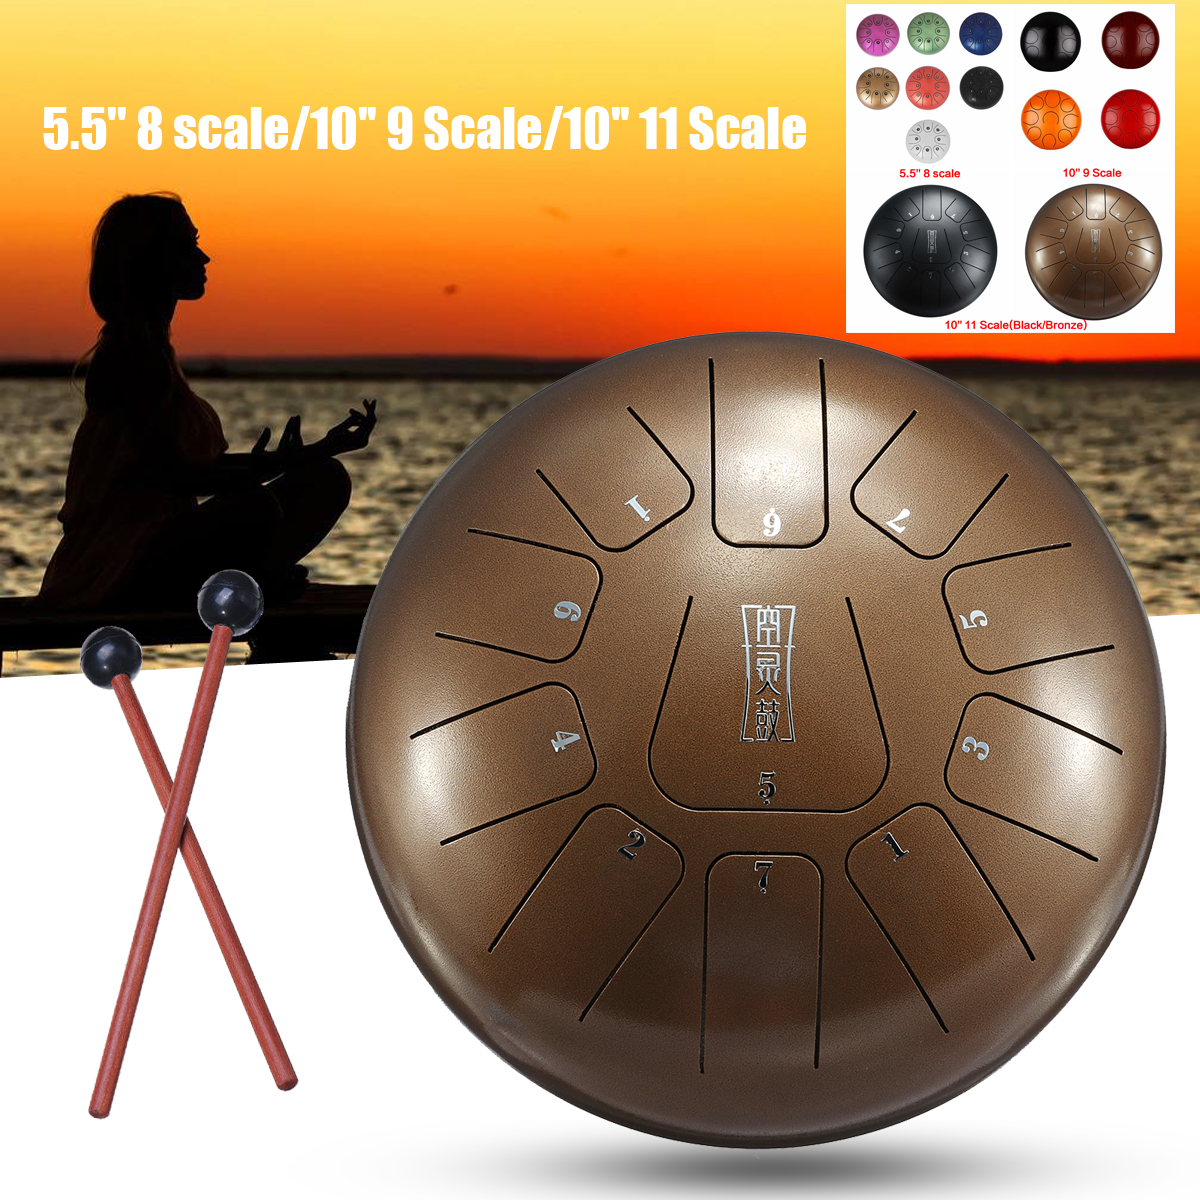 5/10 8/9 Scale Drum Set Hand pan Drums Percussion Tongue Drum with Free Bag + Mallets for Children Music Instrument Set electronic drum set stand percussion music instruments build in metronome 12 groups drum tones 43 groups accompaniment midi jack